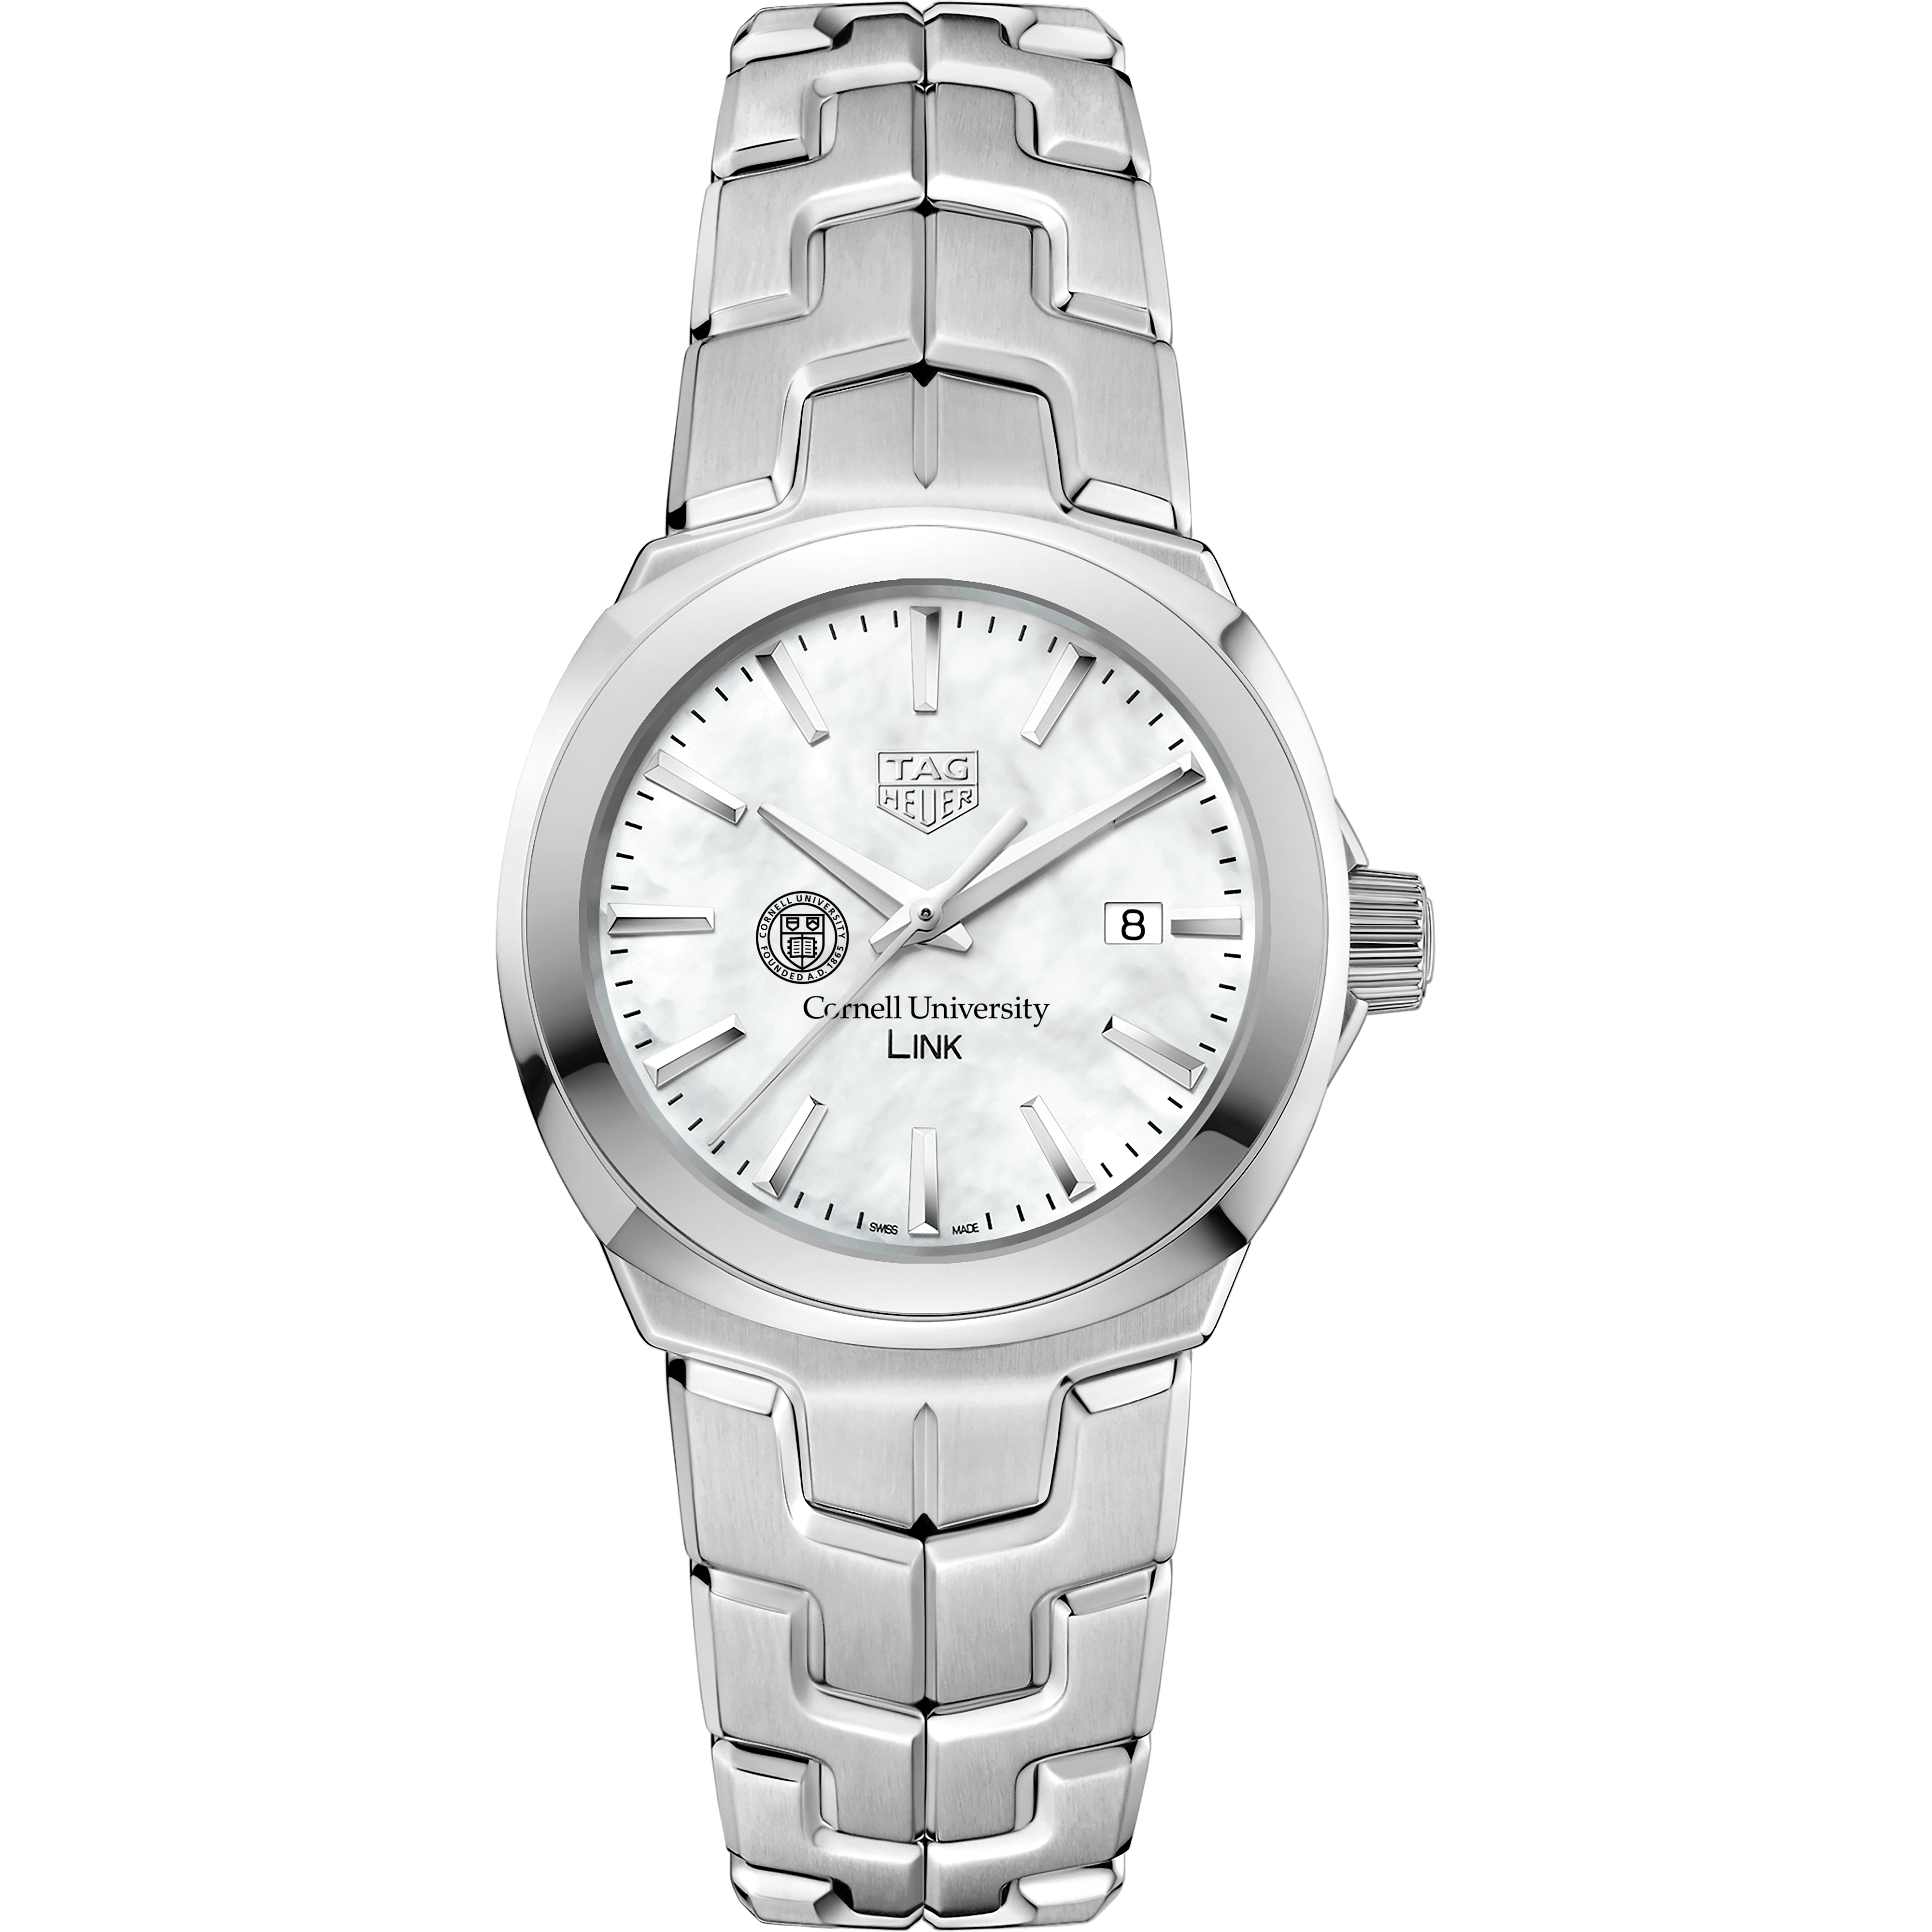 Cornell University TAG Heuer LINK for Women - Image 2